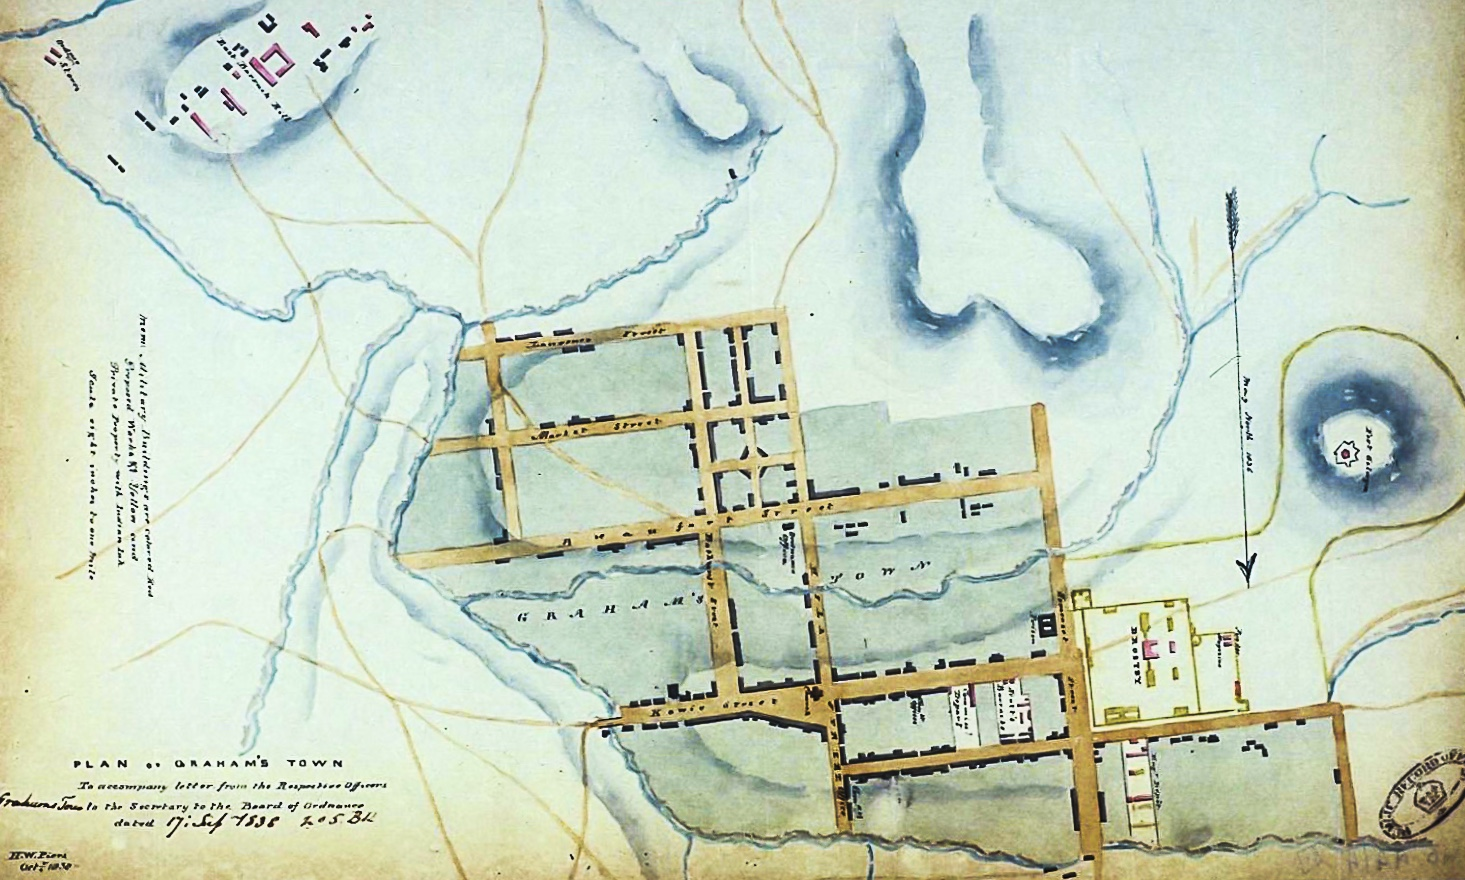 Piers' 1838 Sketch of Grahamstown